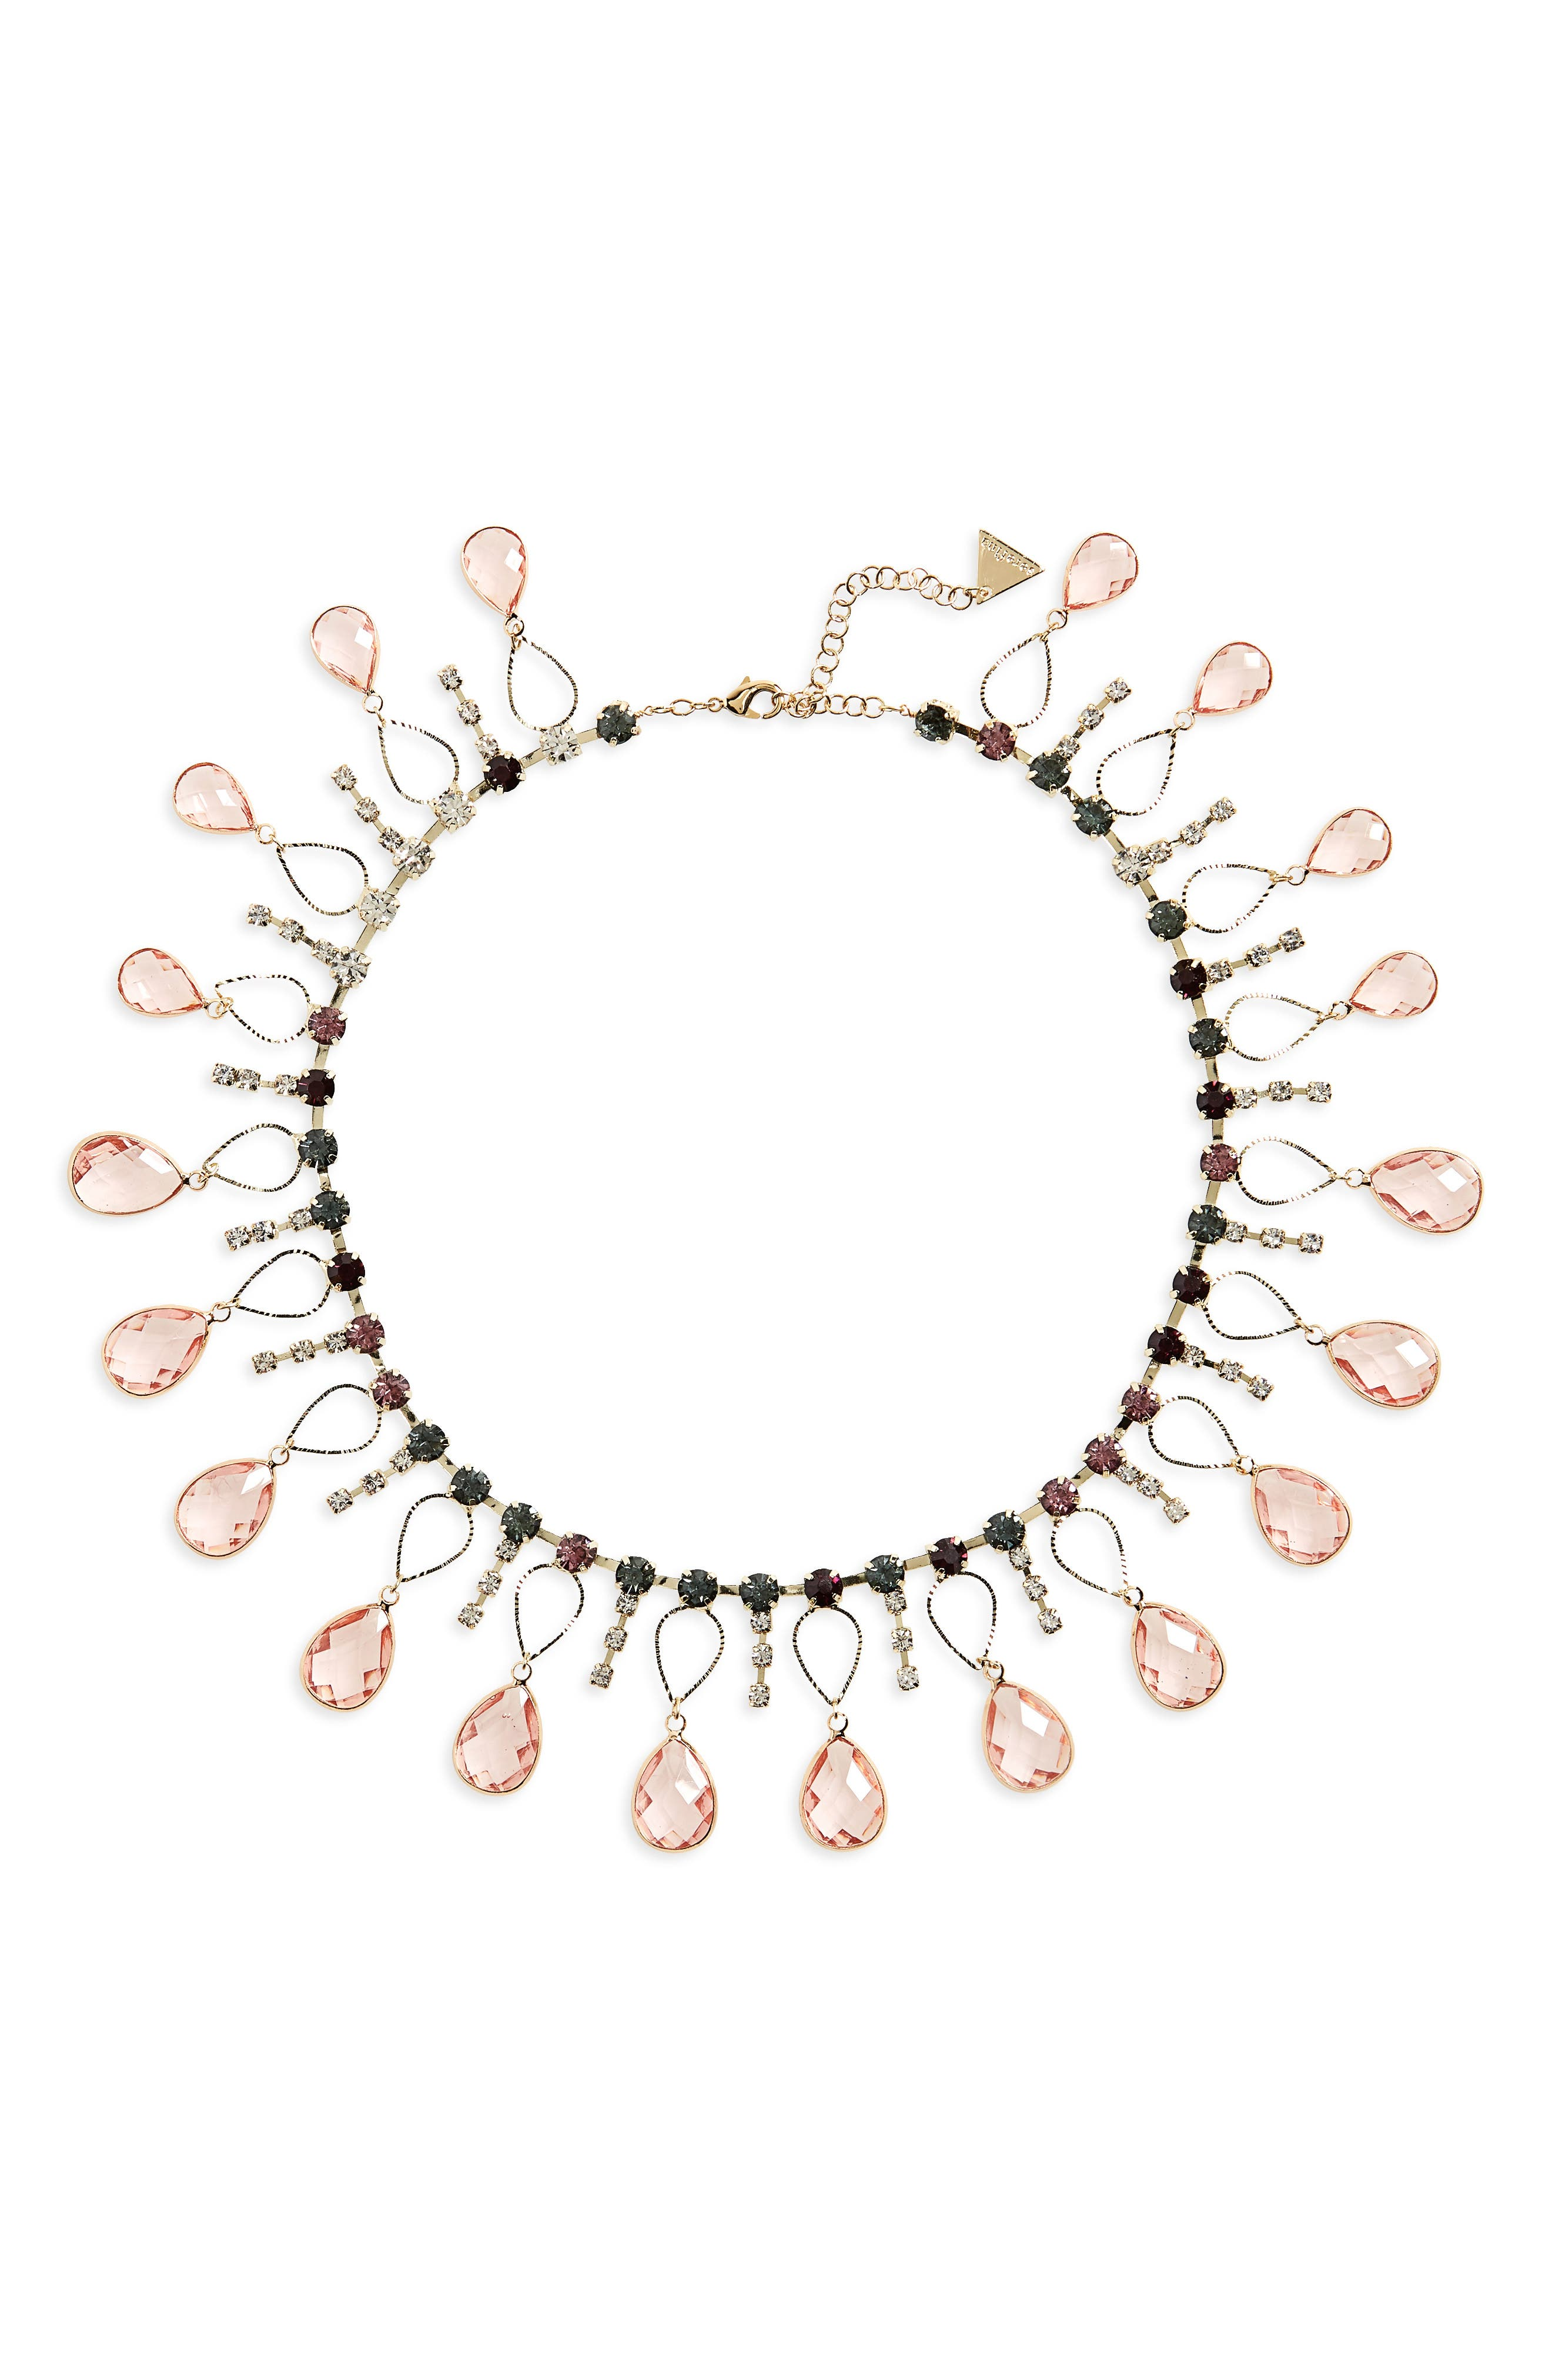 Scattered Crystal Necklace,                             Main thumbnail 1, color,                             Pink